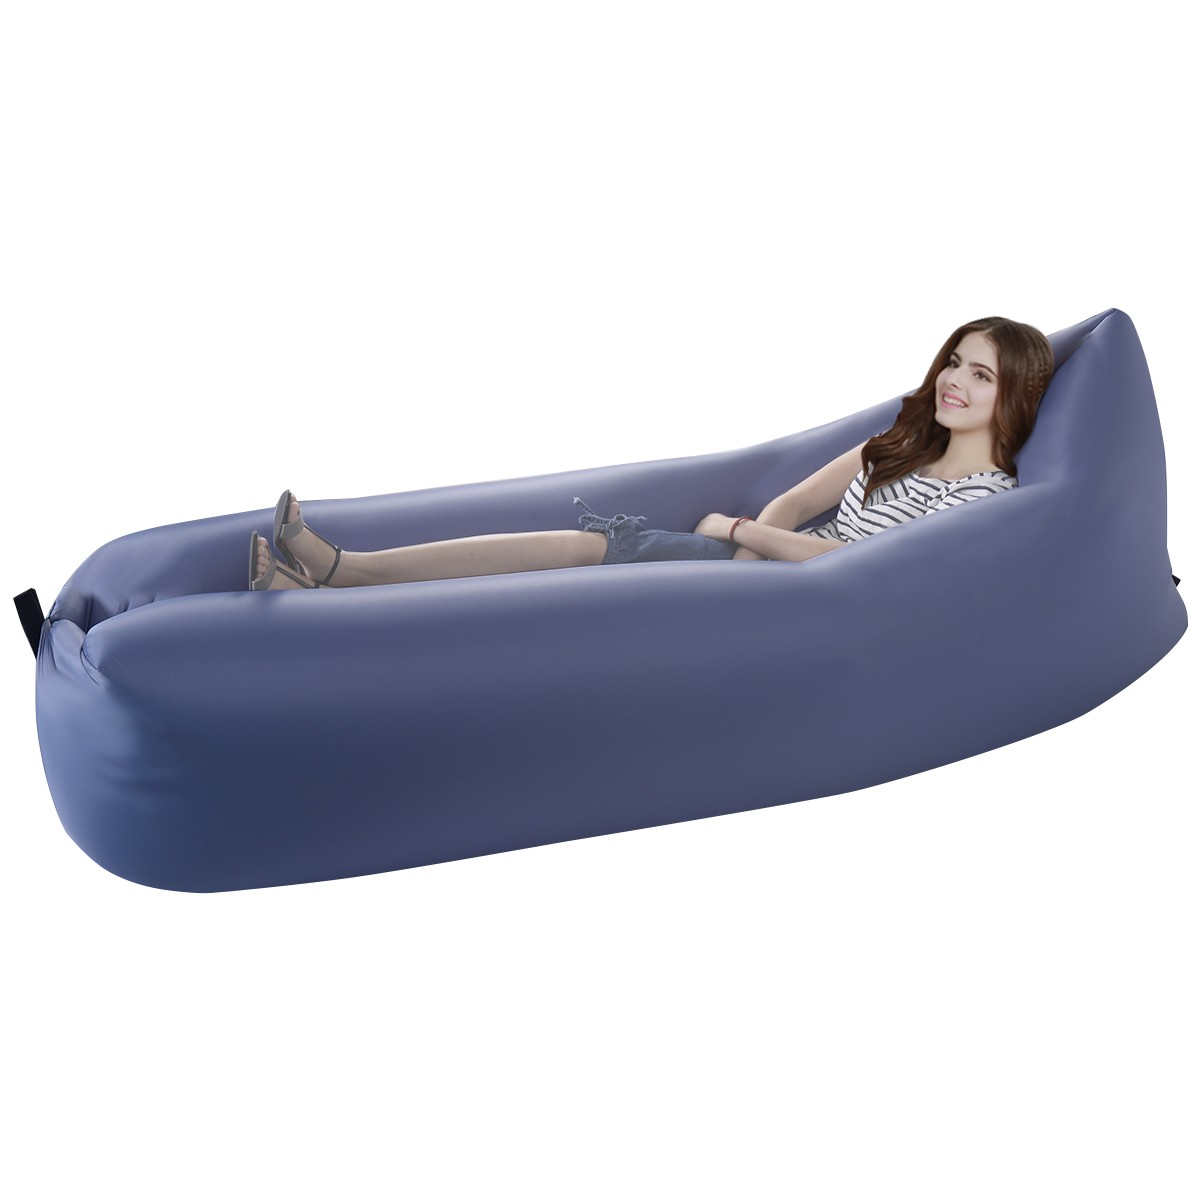 Outdoor Lazy Inflatable Couch Air Sleeping Sofa Lounger Bag Camping Bed Portable Ebay